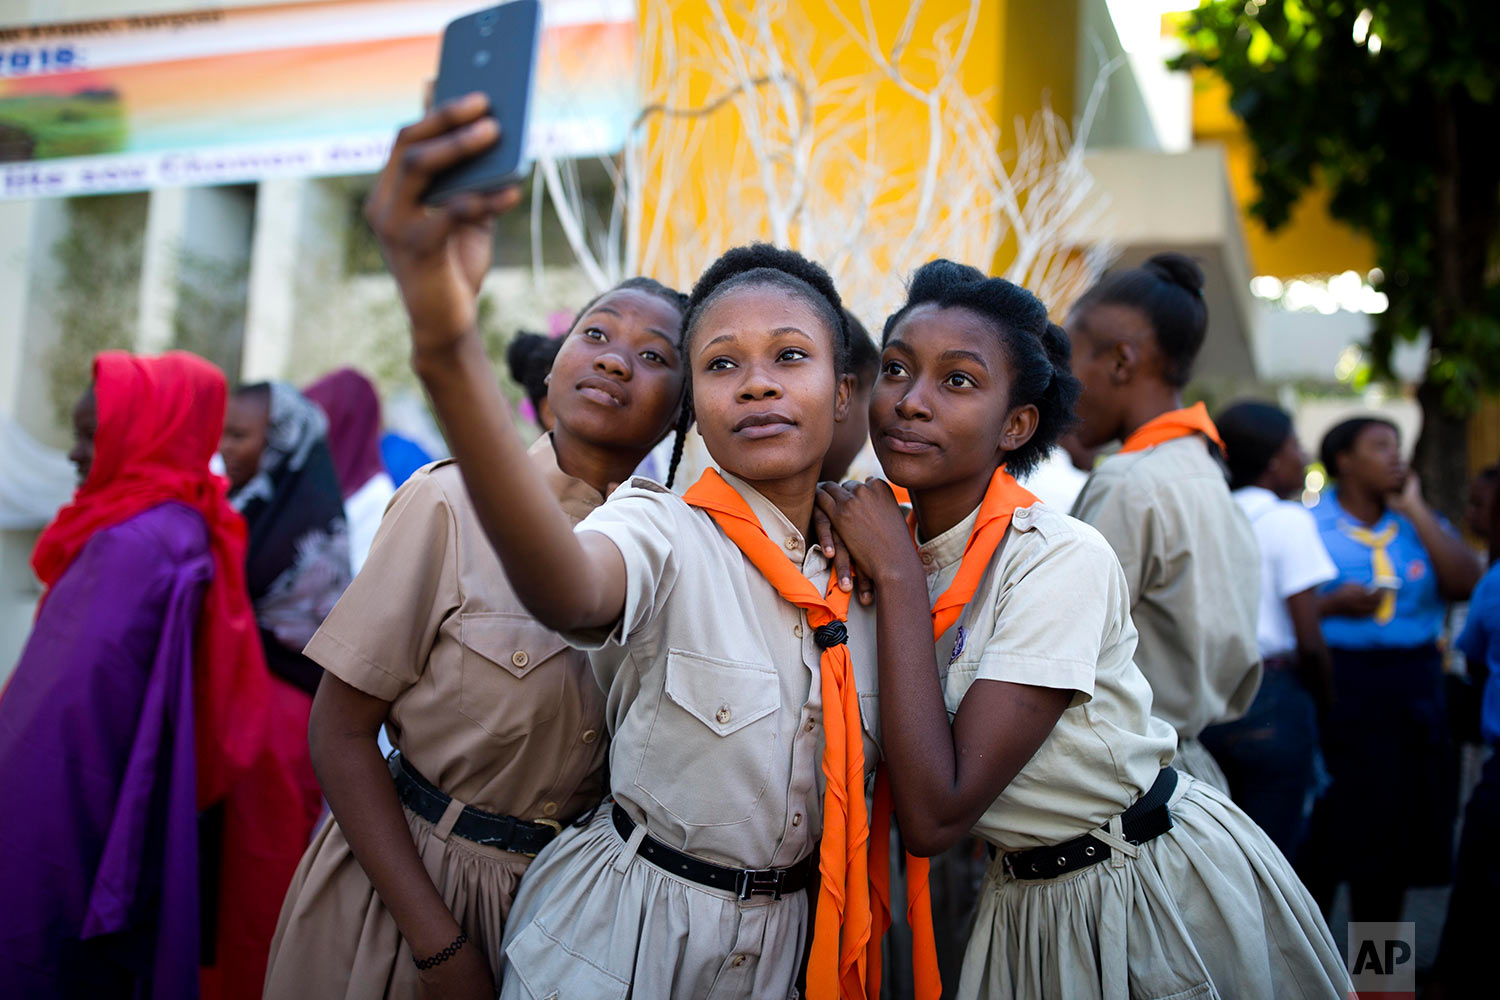 Girl scouts pose for a group photo at the third station of the Way of the Cross reenactment marking Good Friday, in Port-au-Prince, Haiti, March 30, 2018. Thousands of Haitians are commemorating the crucifixion of Jesus Christ by reenacting the Way of the Cross, visiting the 14 stations, each marking an event that befell Jesus Christ on his final journey. (AP Photo/Dieu Nalio Chery)